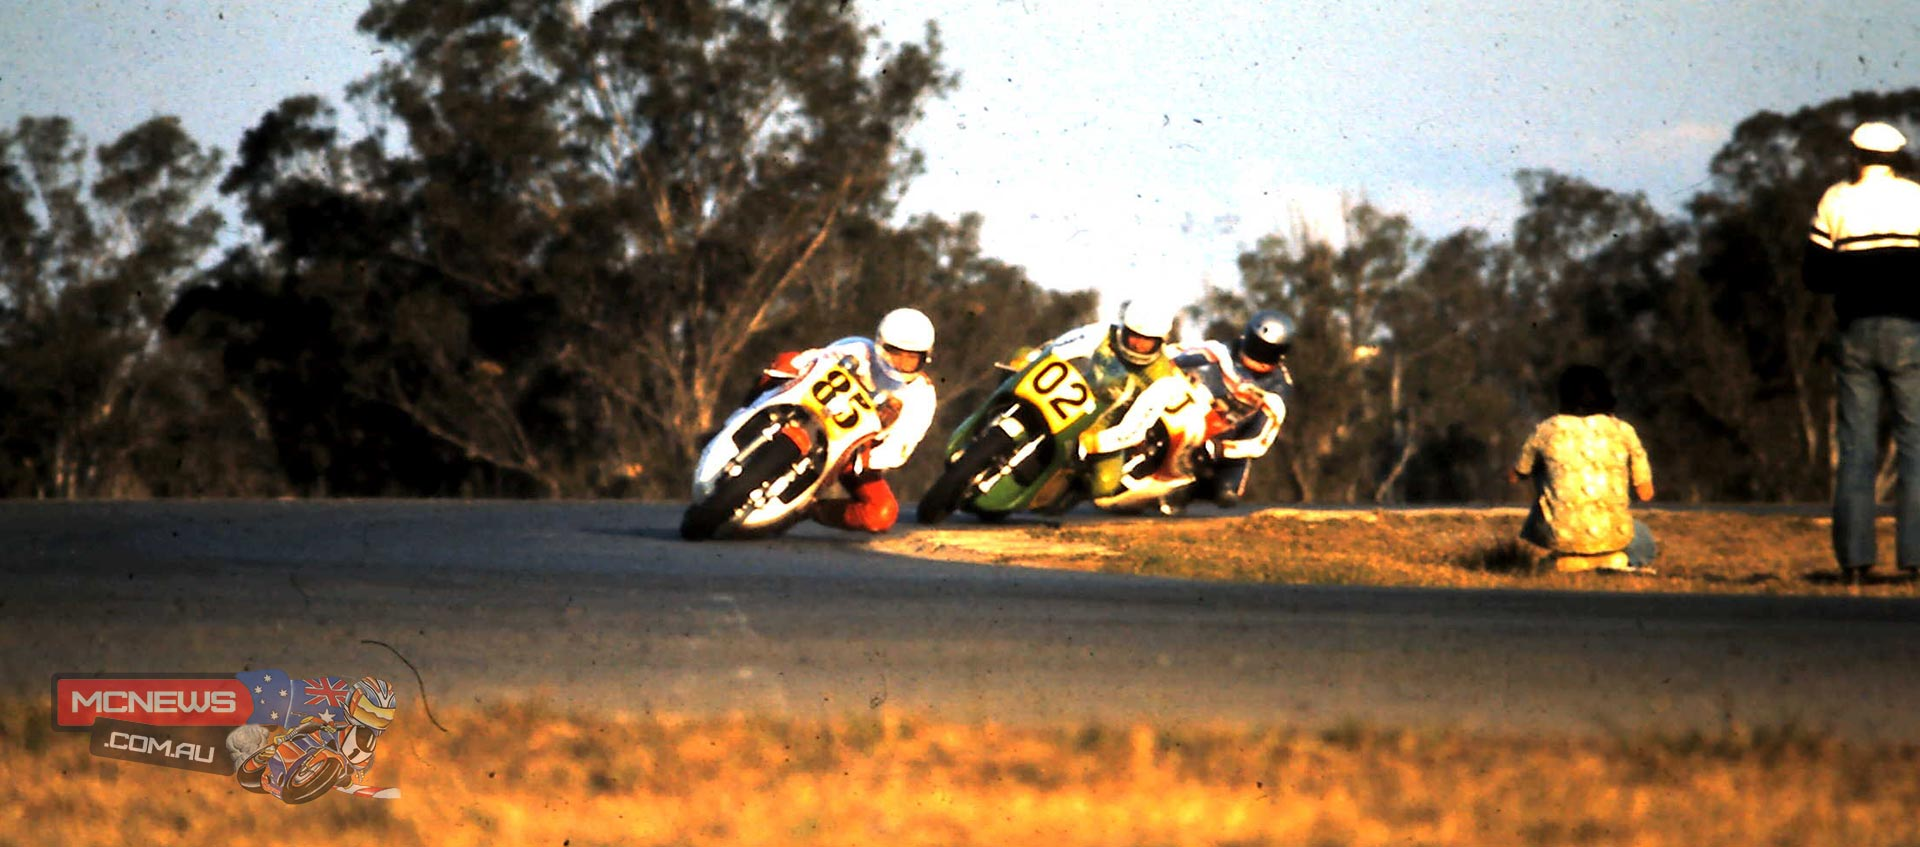 Warren Willing, Gregg Hansford and John Woodley in the same order at CC Corner at the bottom of the straight. Willing had established a small break at this stage due to traffic.